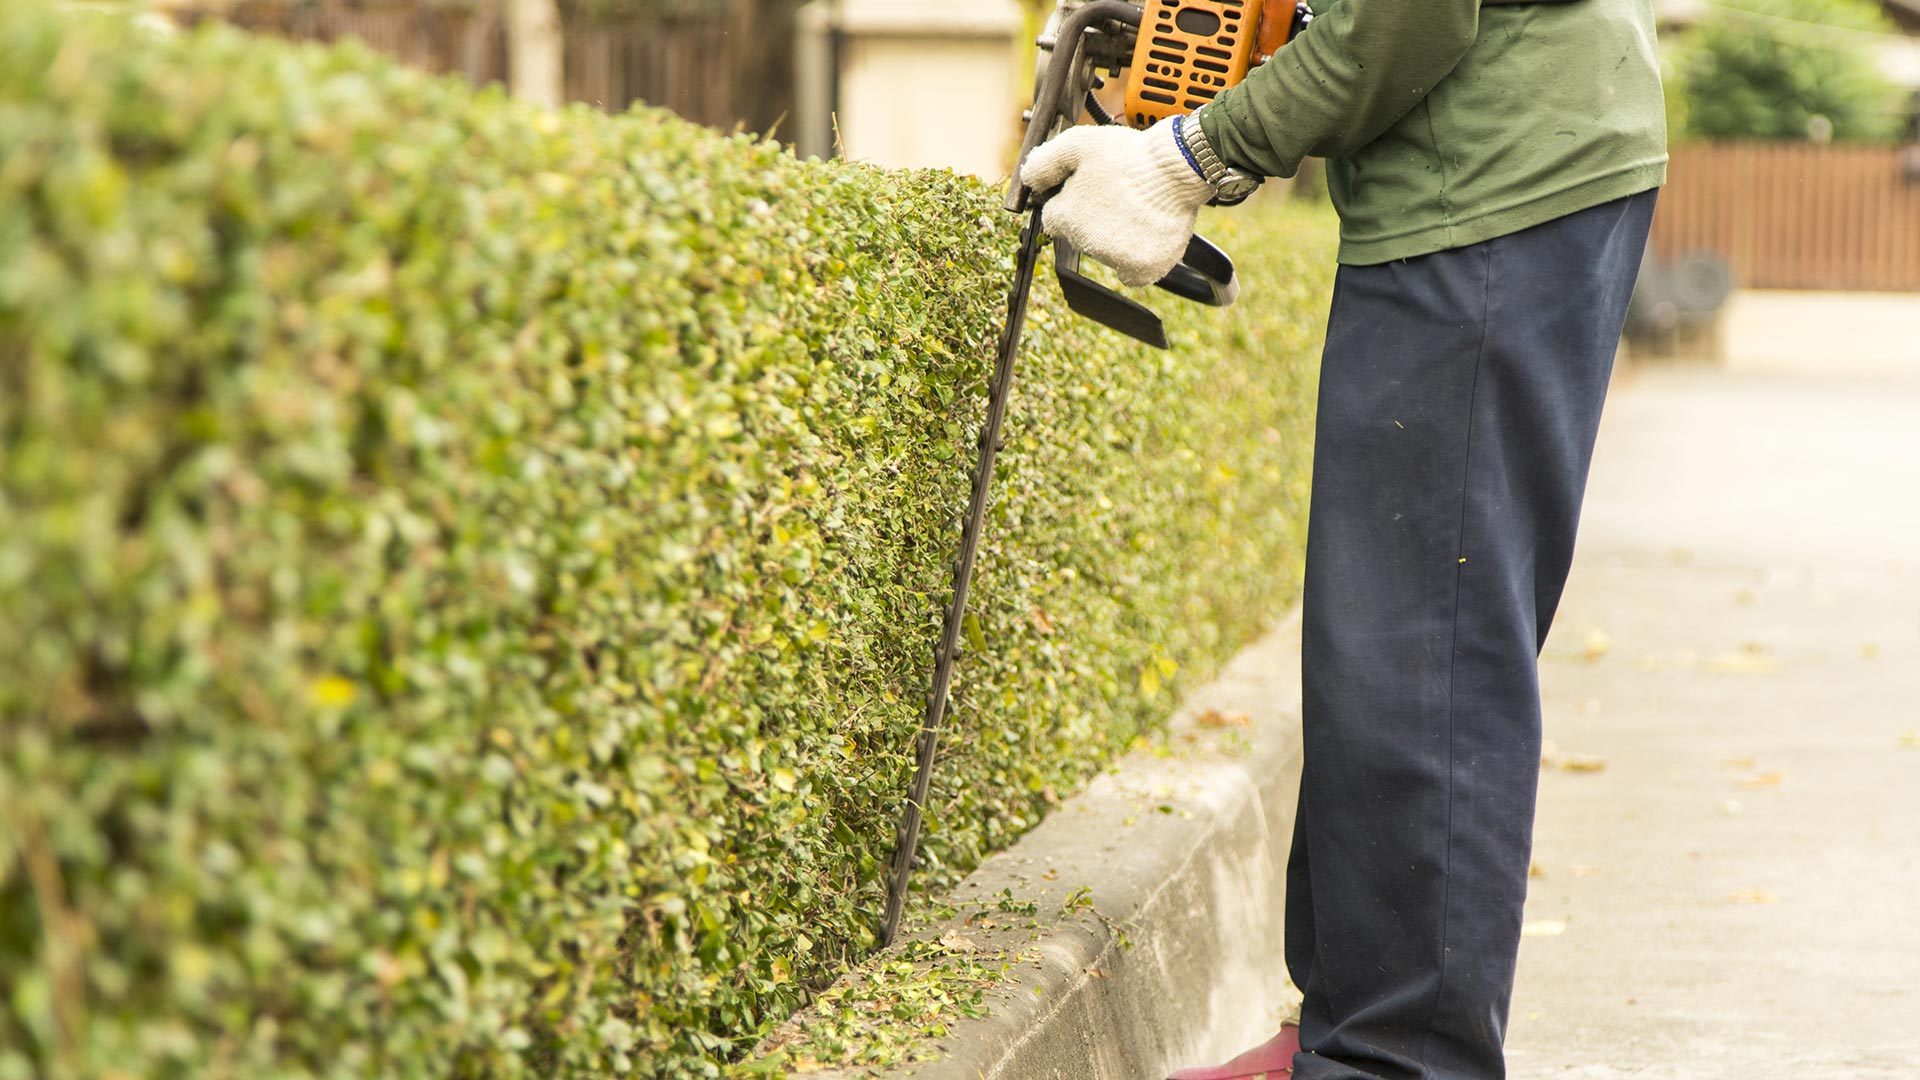 Landscape worker trimming hedges with electric shears in Grand Rapids, MI.